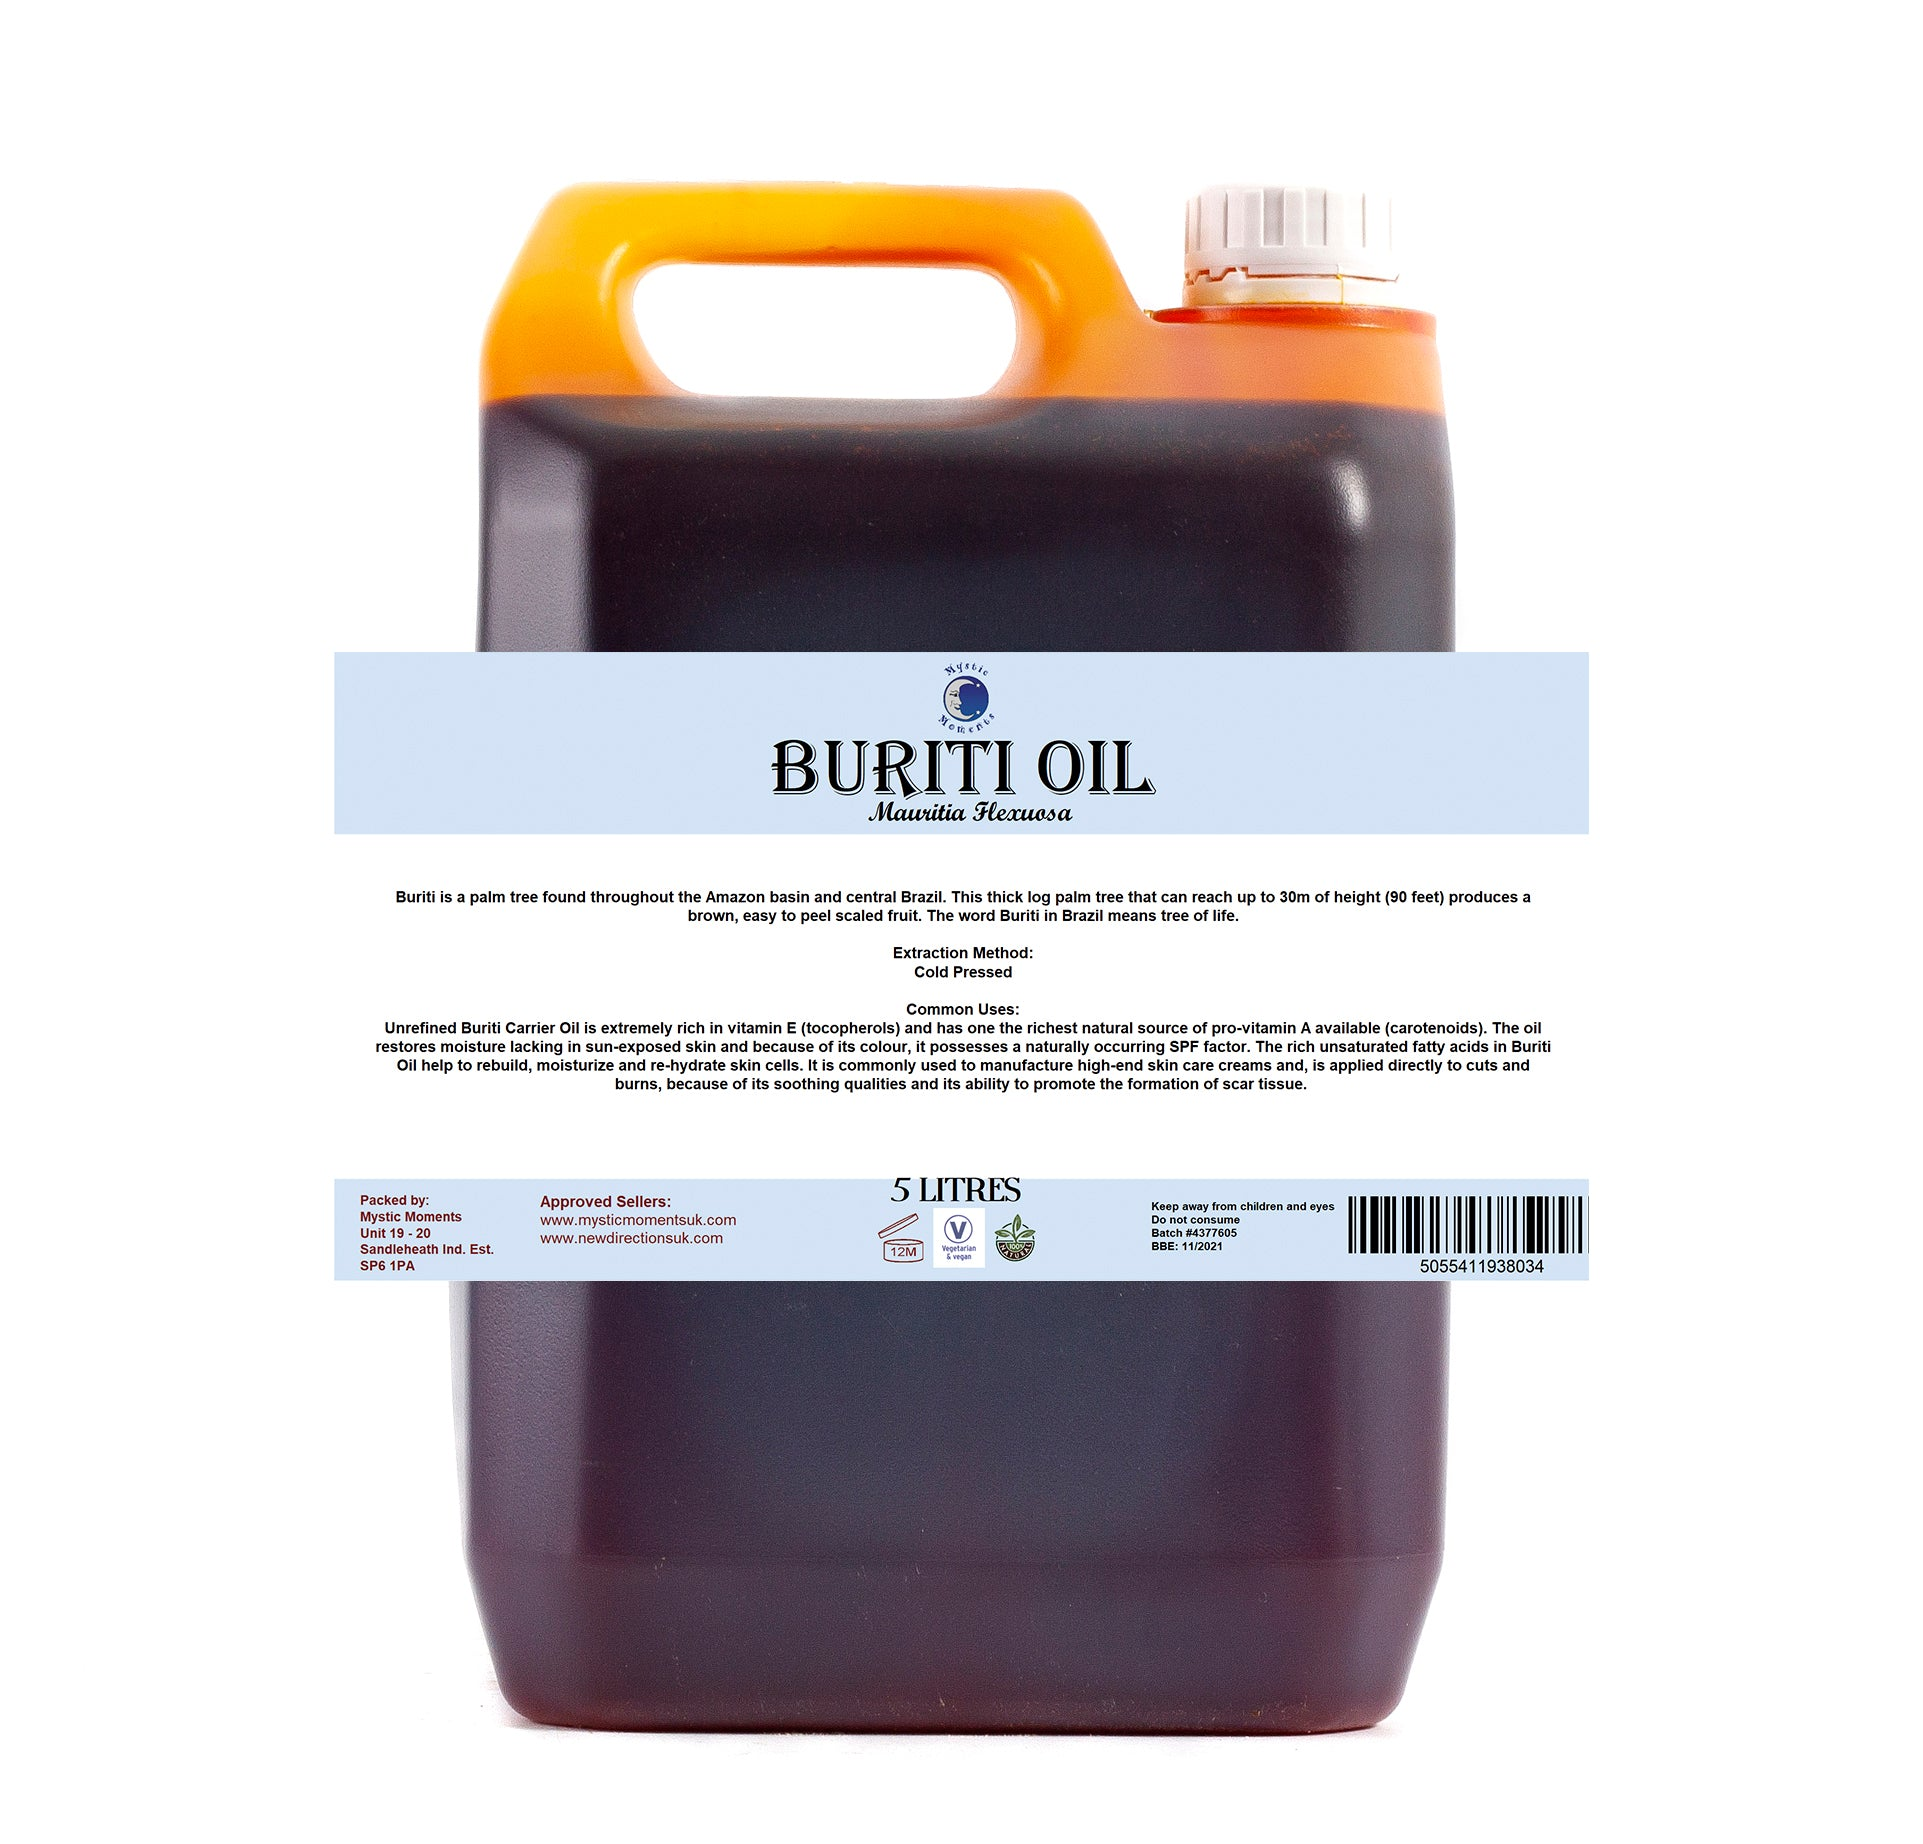 Buriti Virgin Carrier Oil